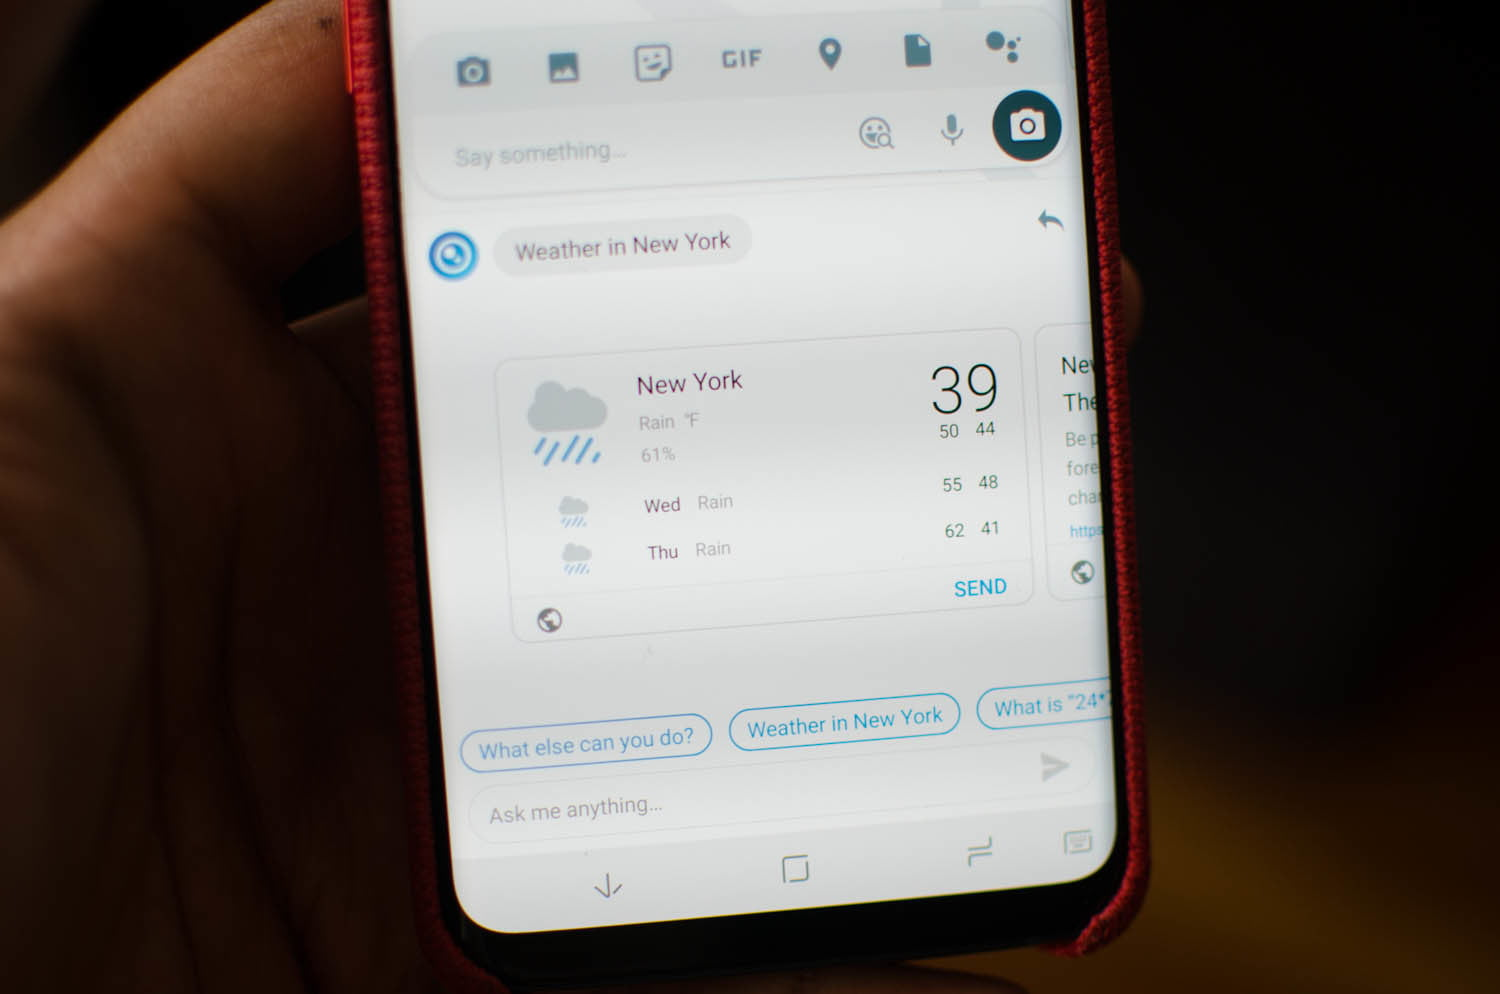 TouchPal's Talia Assistant Improves the Mobile Keyboard